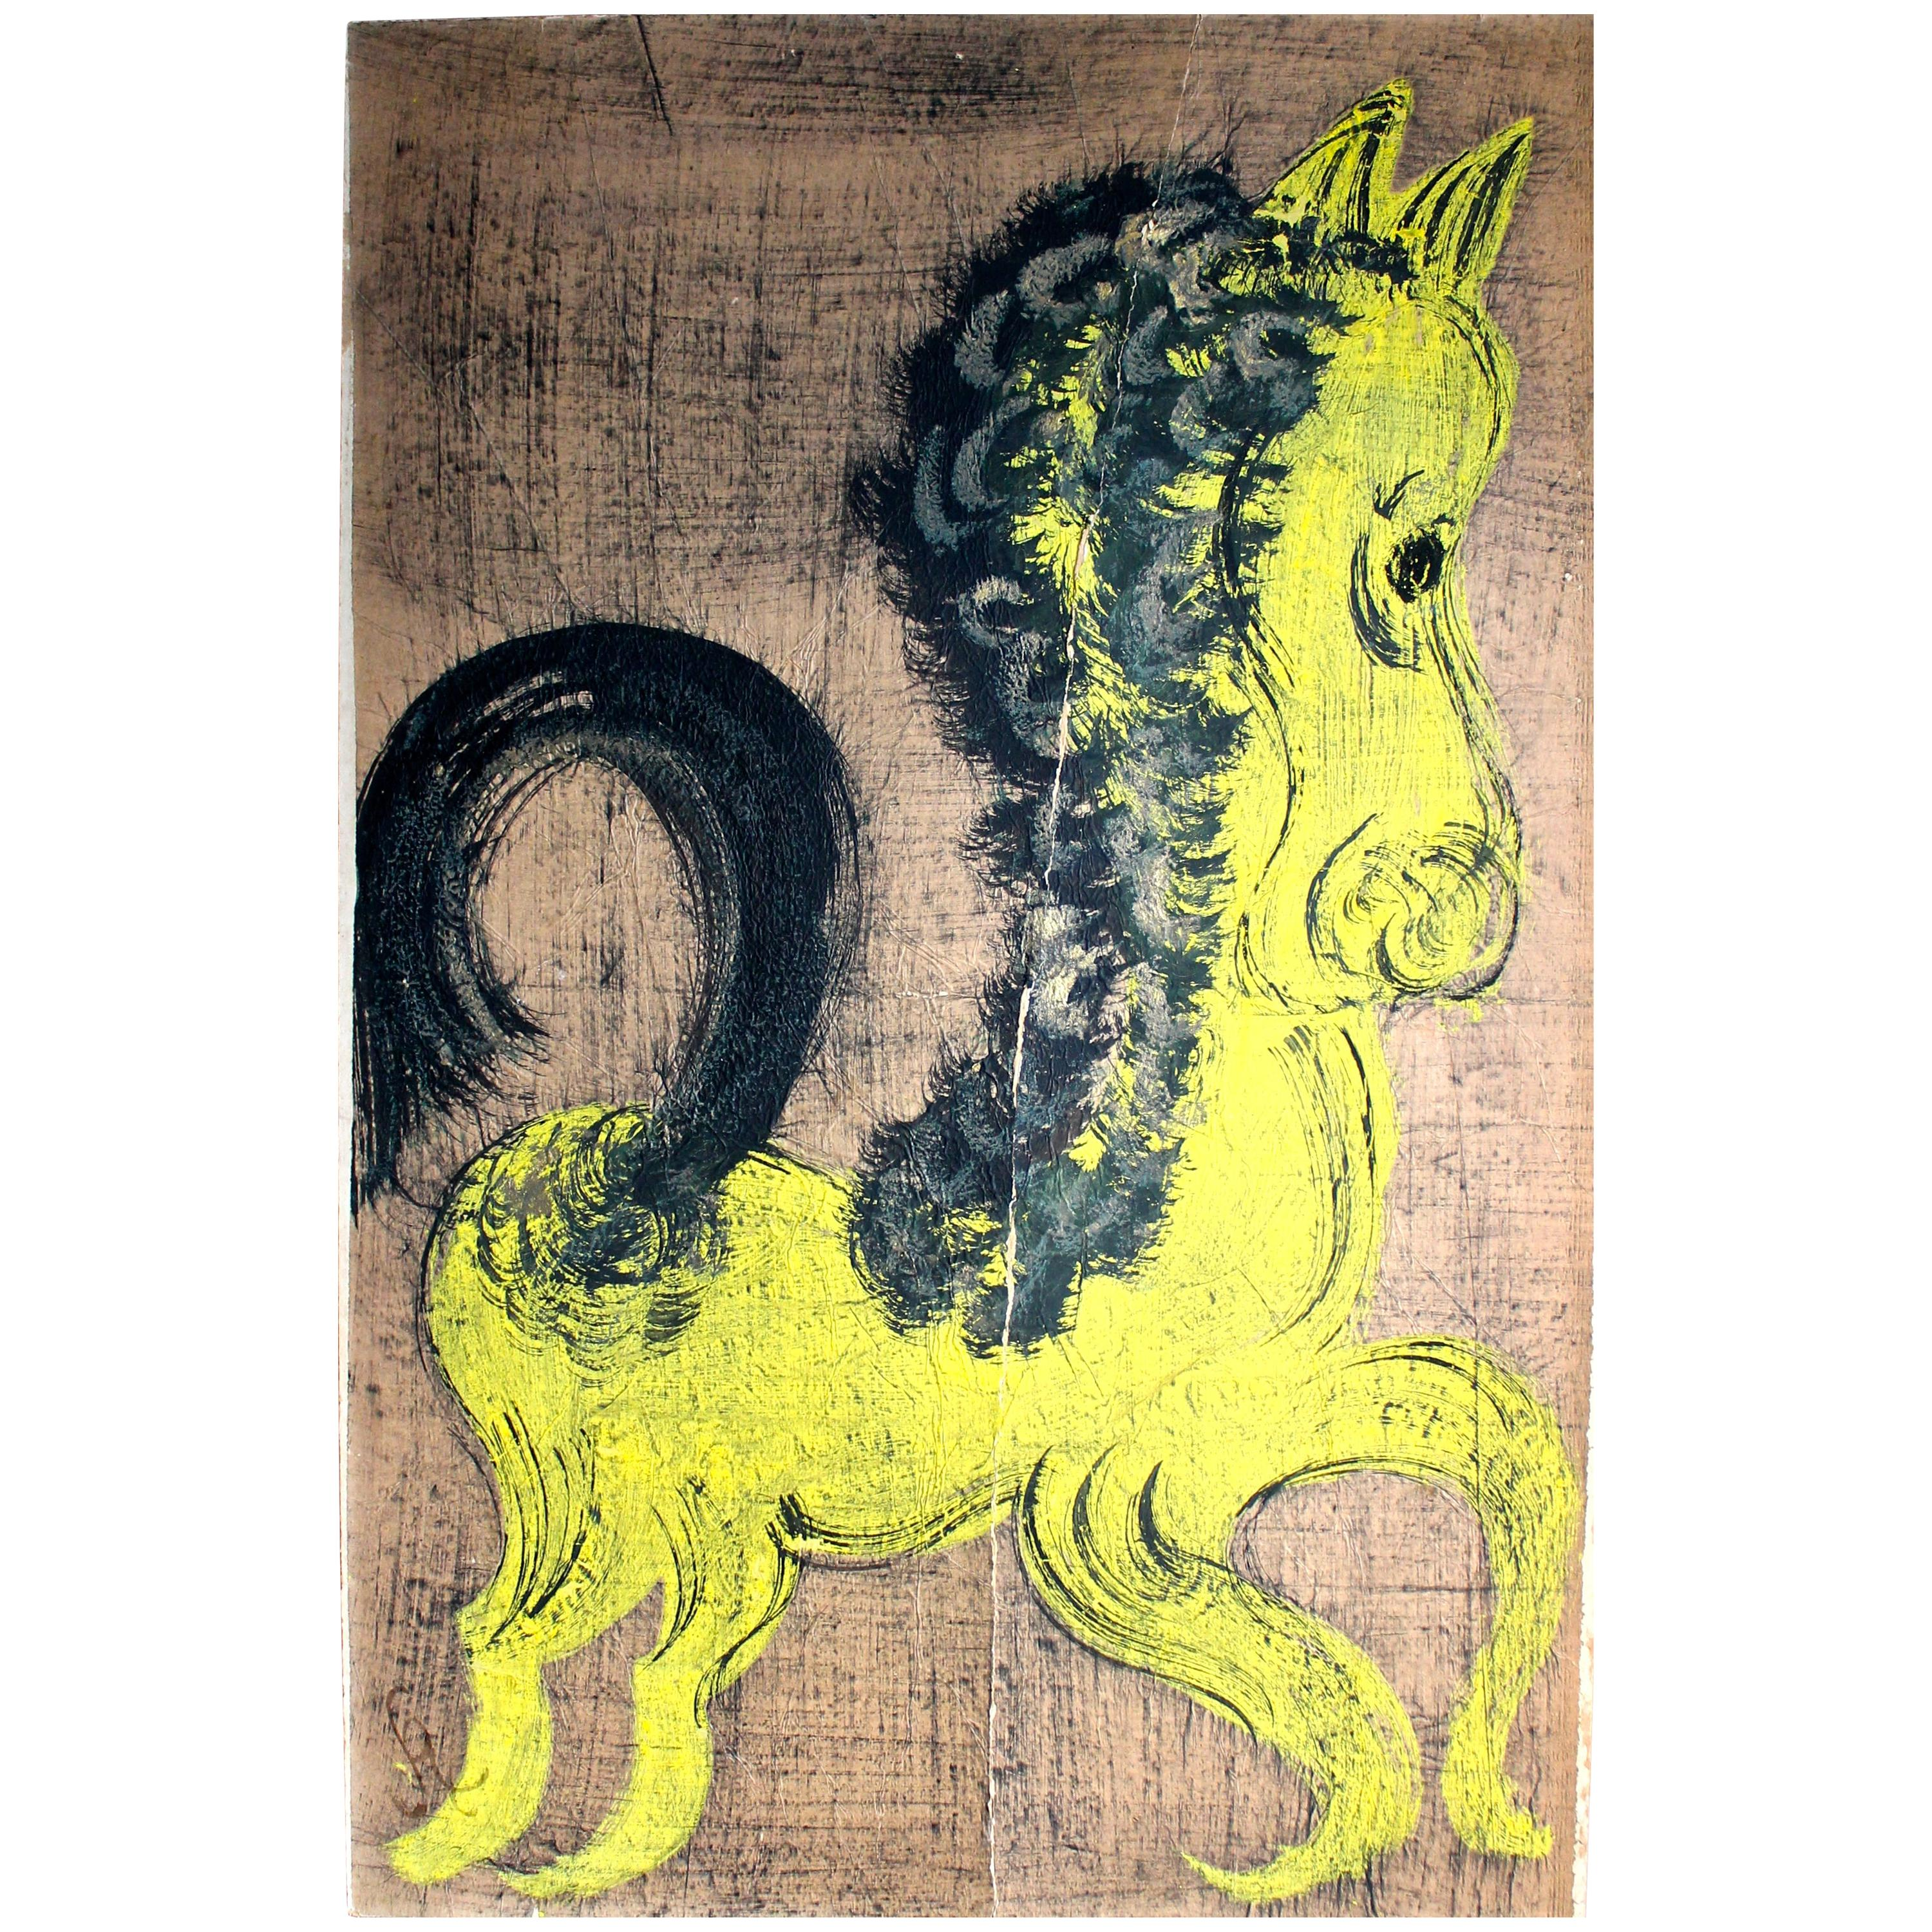 'Chucho' Reyes Gouache of a Horse on Mounted Paper